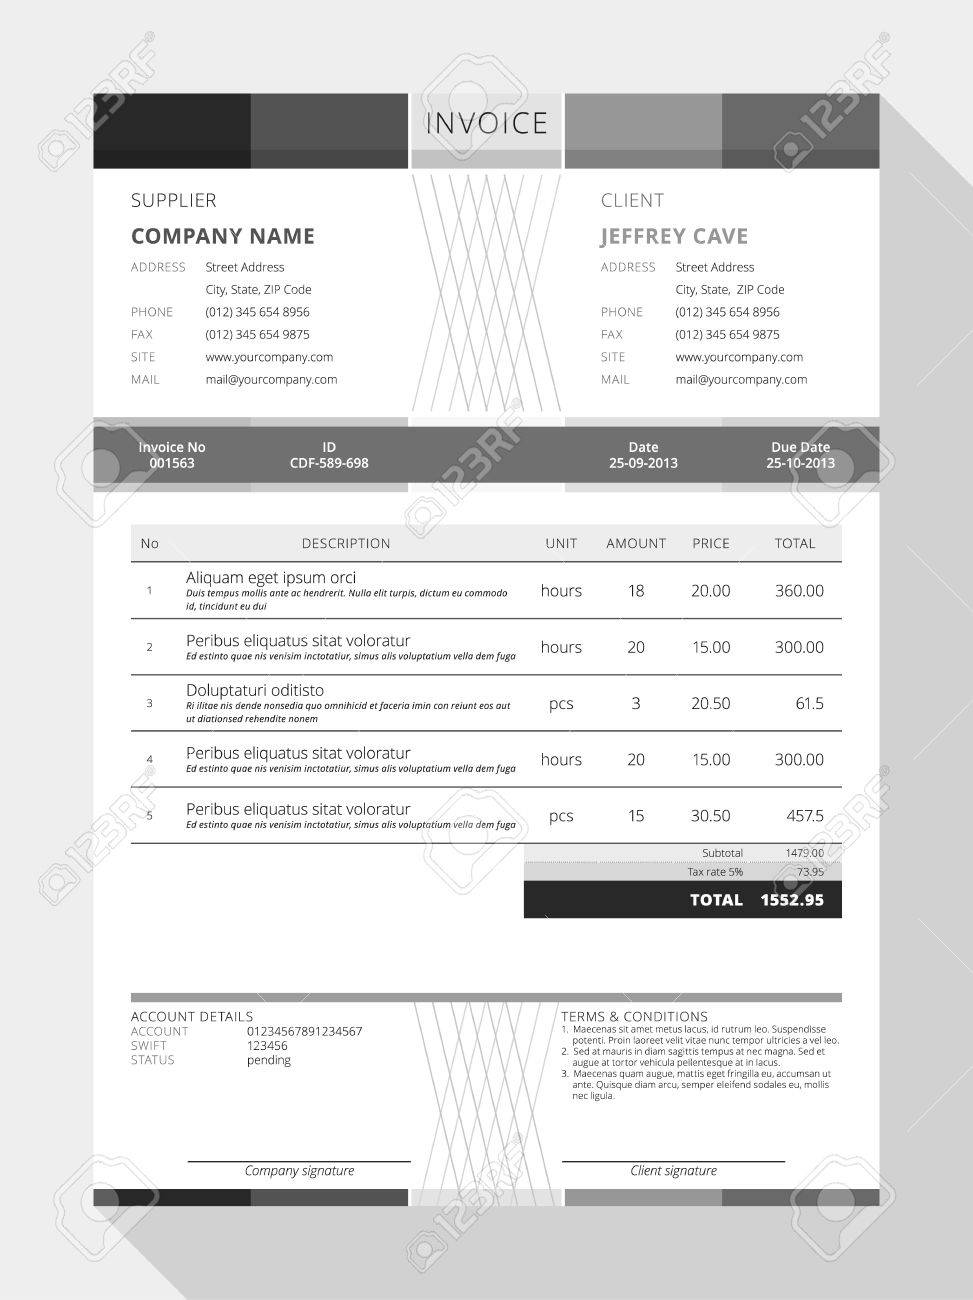 Angkajituus  Pleasing Design An Invoice  Professional Graphic Design Invoice  With Goodlooking Vector Customizable Invoice Form Template Design Vector   Design An Invoice With Astonishing Invoice Matching Process Also Invoice Template Free Uk In Addition Sales Invoice Format And Dealer Invoice Price Mazda Cx As Well As Software To Create Invoices Additionally Php Invoice Software From Happytomco With Angkajituus  Goodlooking Design An Invoice  Professional Graphic Design Invoice  With Astonishing Vector Customizable Invoice Form Template Design Vector   Design An Invoice And Pleasing Invoice Matching Process Also Invoice Template Free Uk In Addition Sales Invoice Format From Happytomco